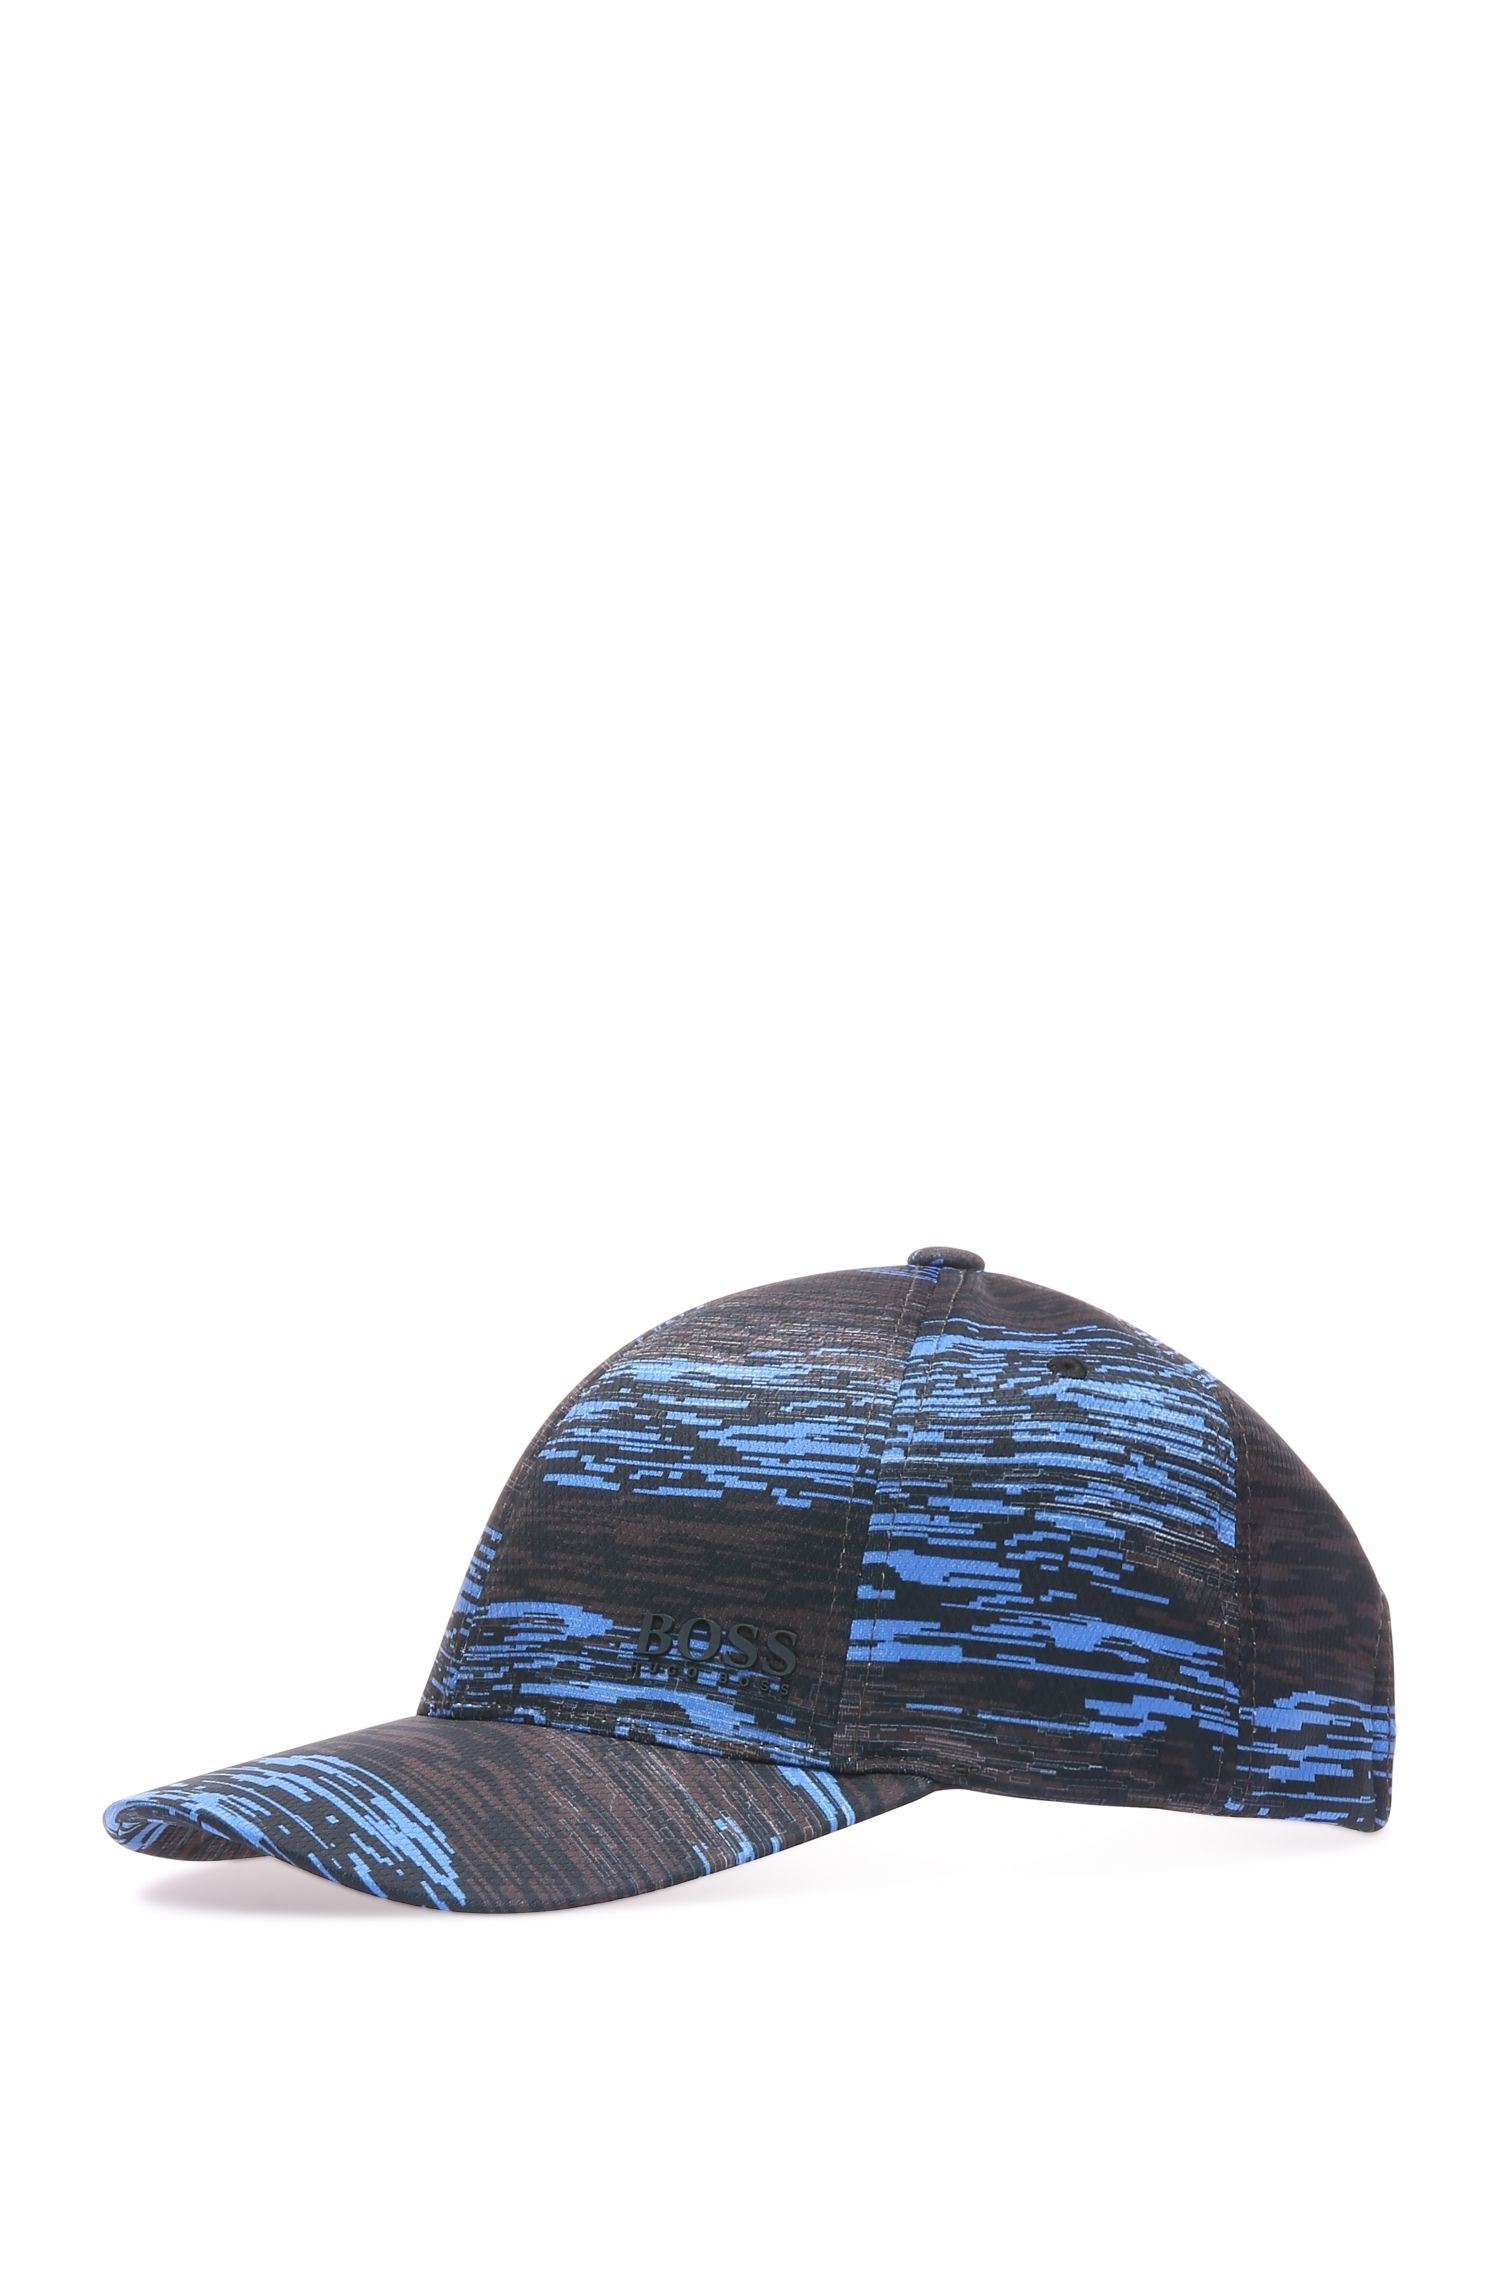 Baseball cap in material blend with pattern: 'Printcap'